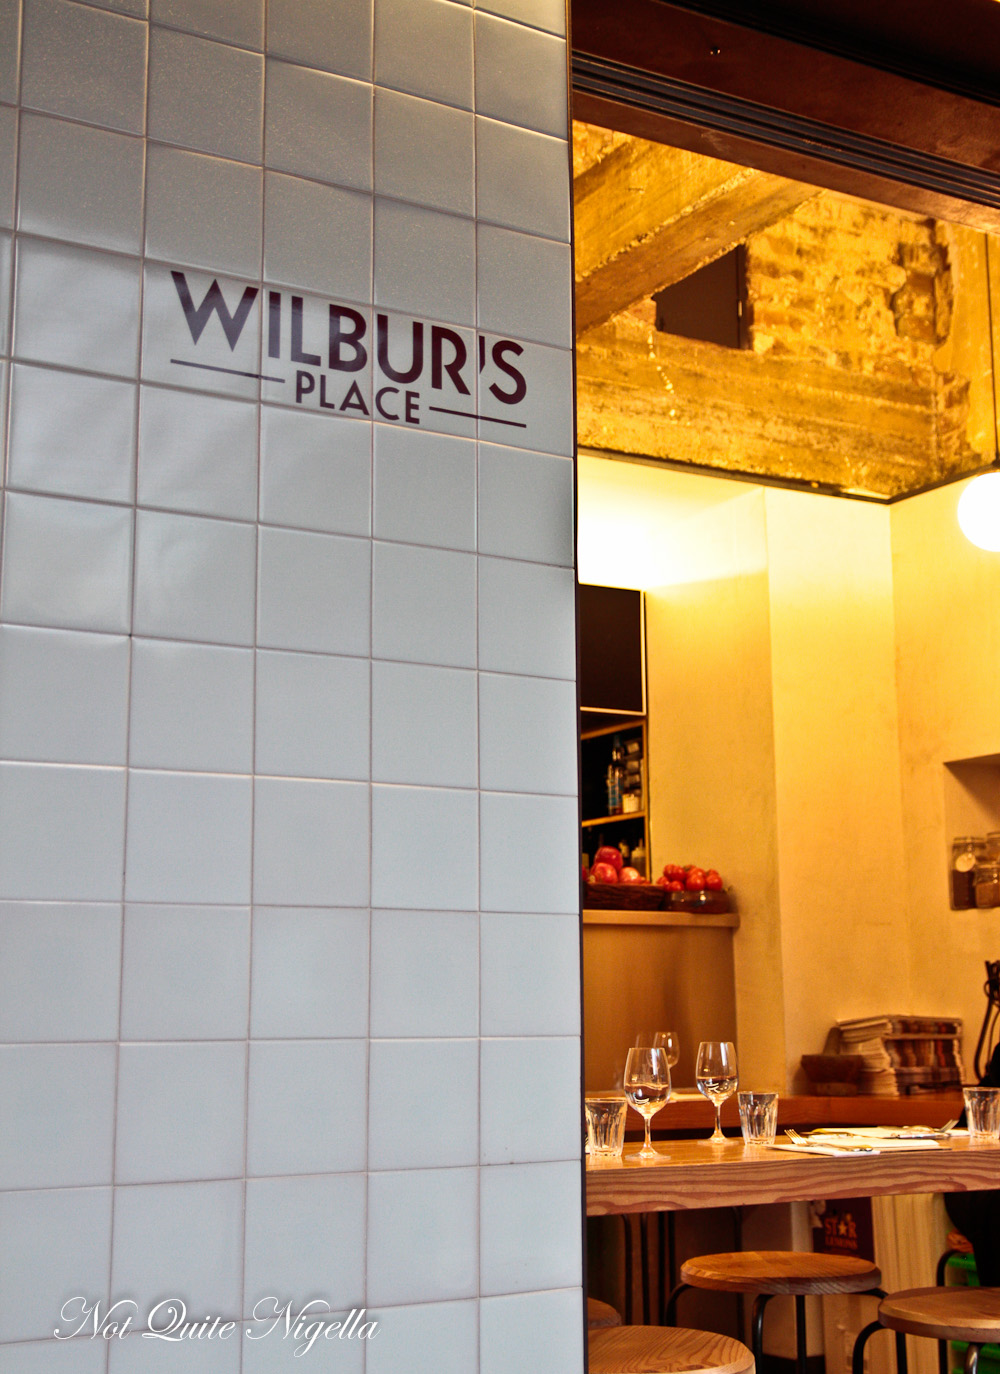 Wilburs Place